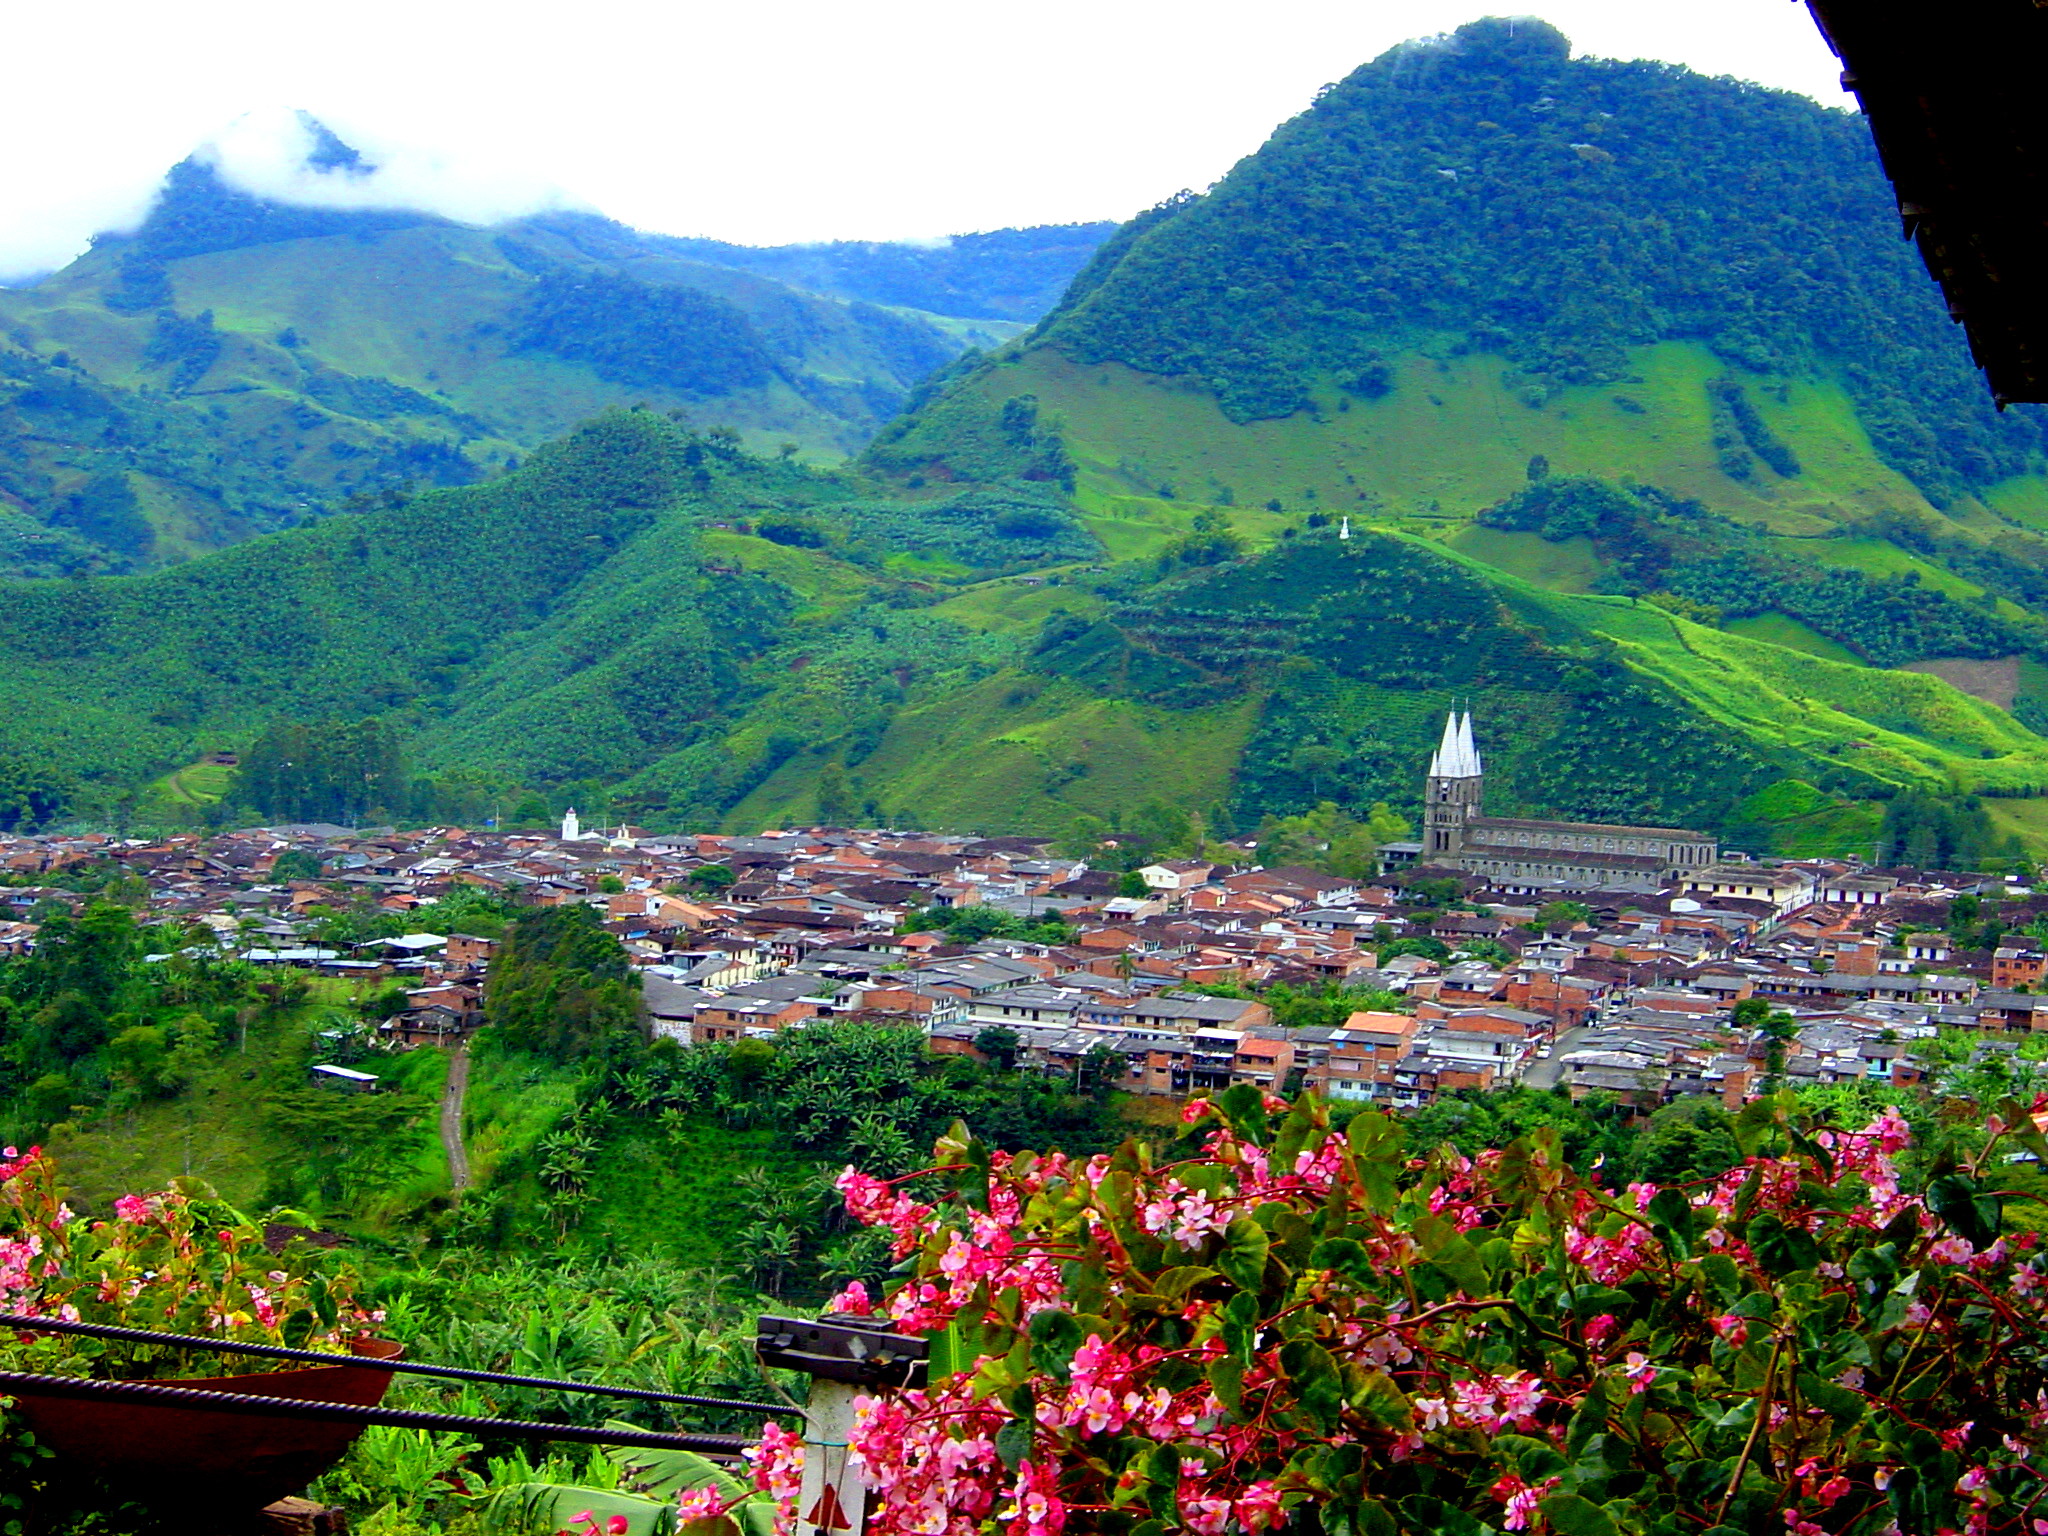 Colombia 39 s diverse mountain climates colombia country brand - Casas y jardines ...